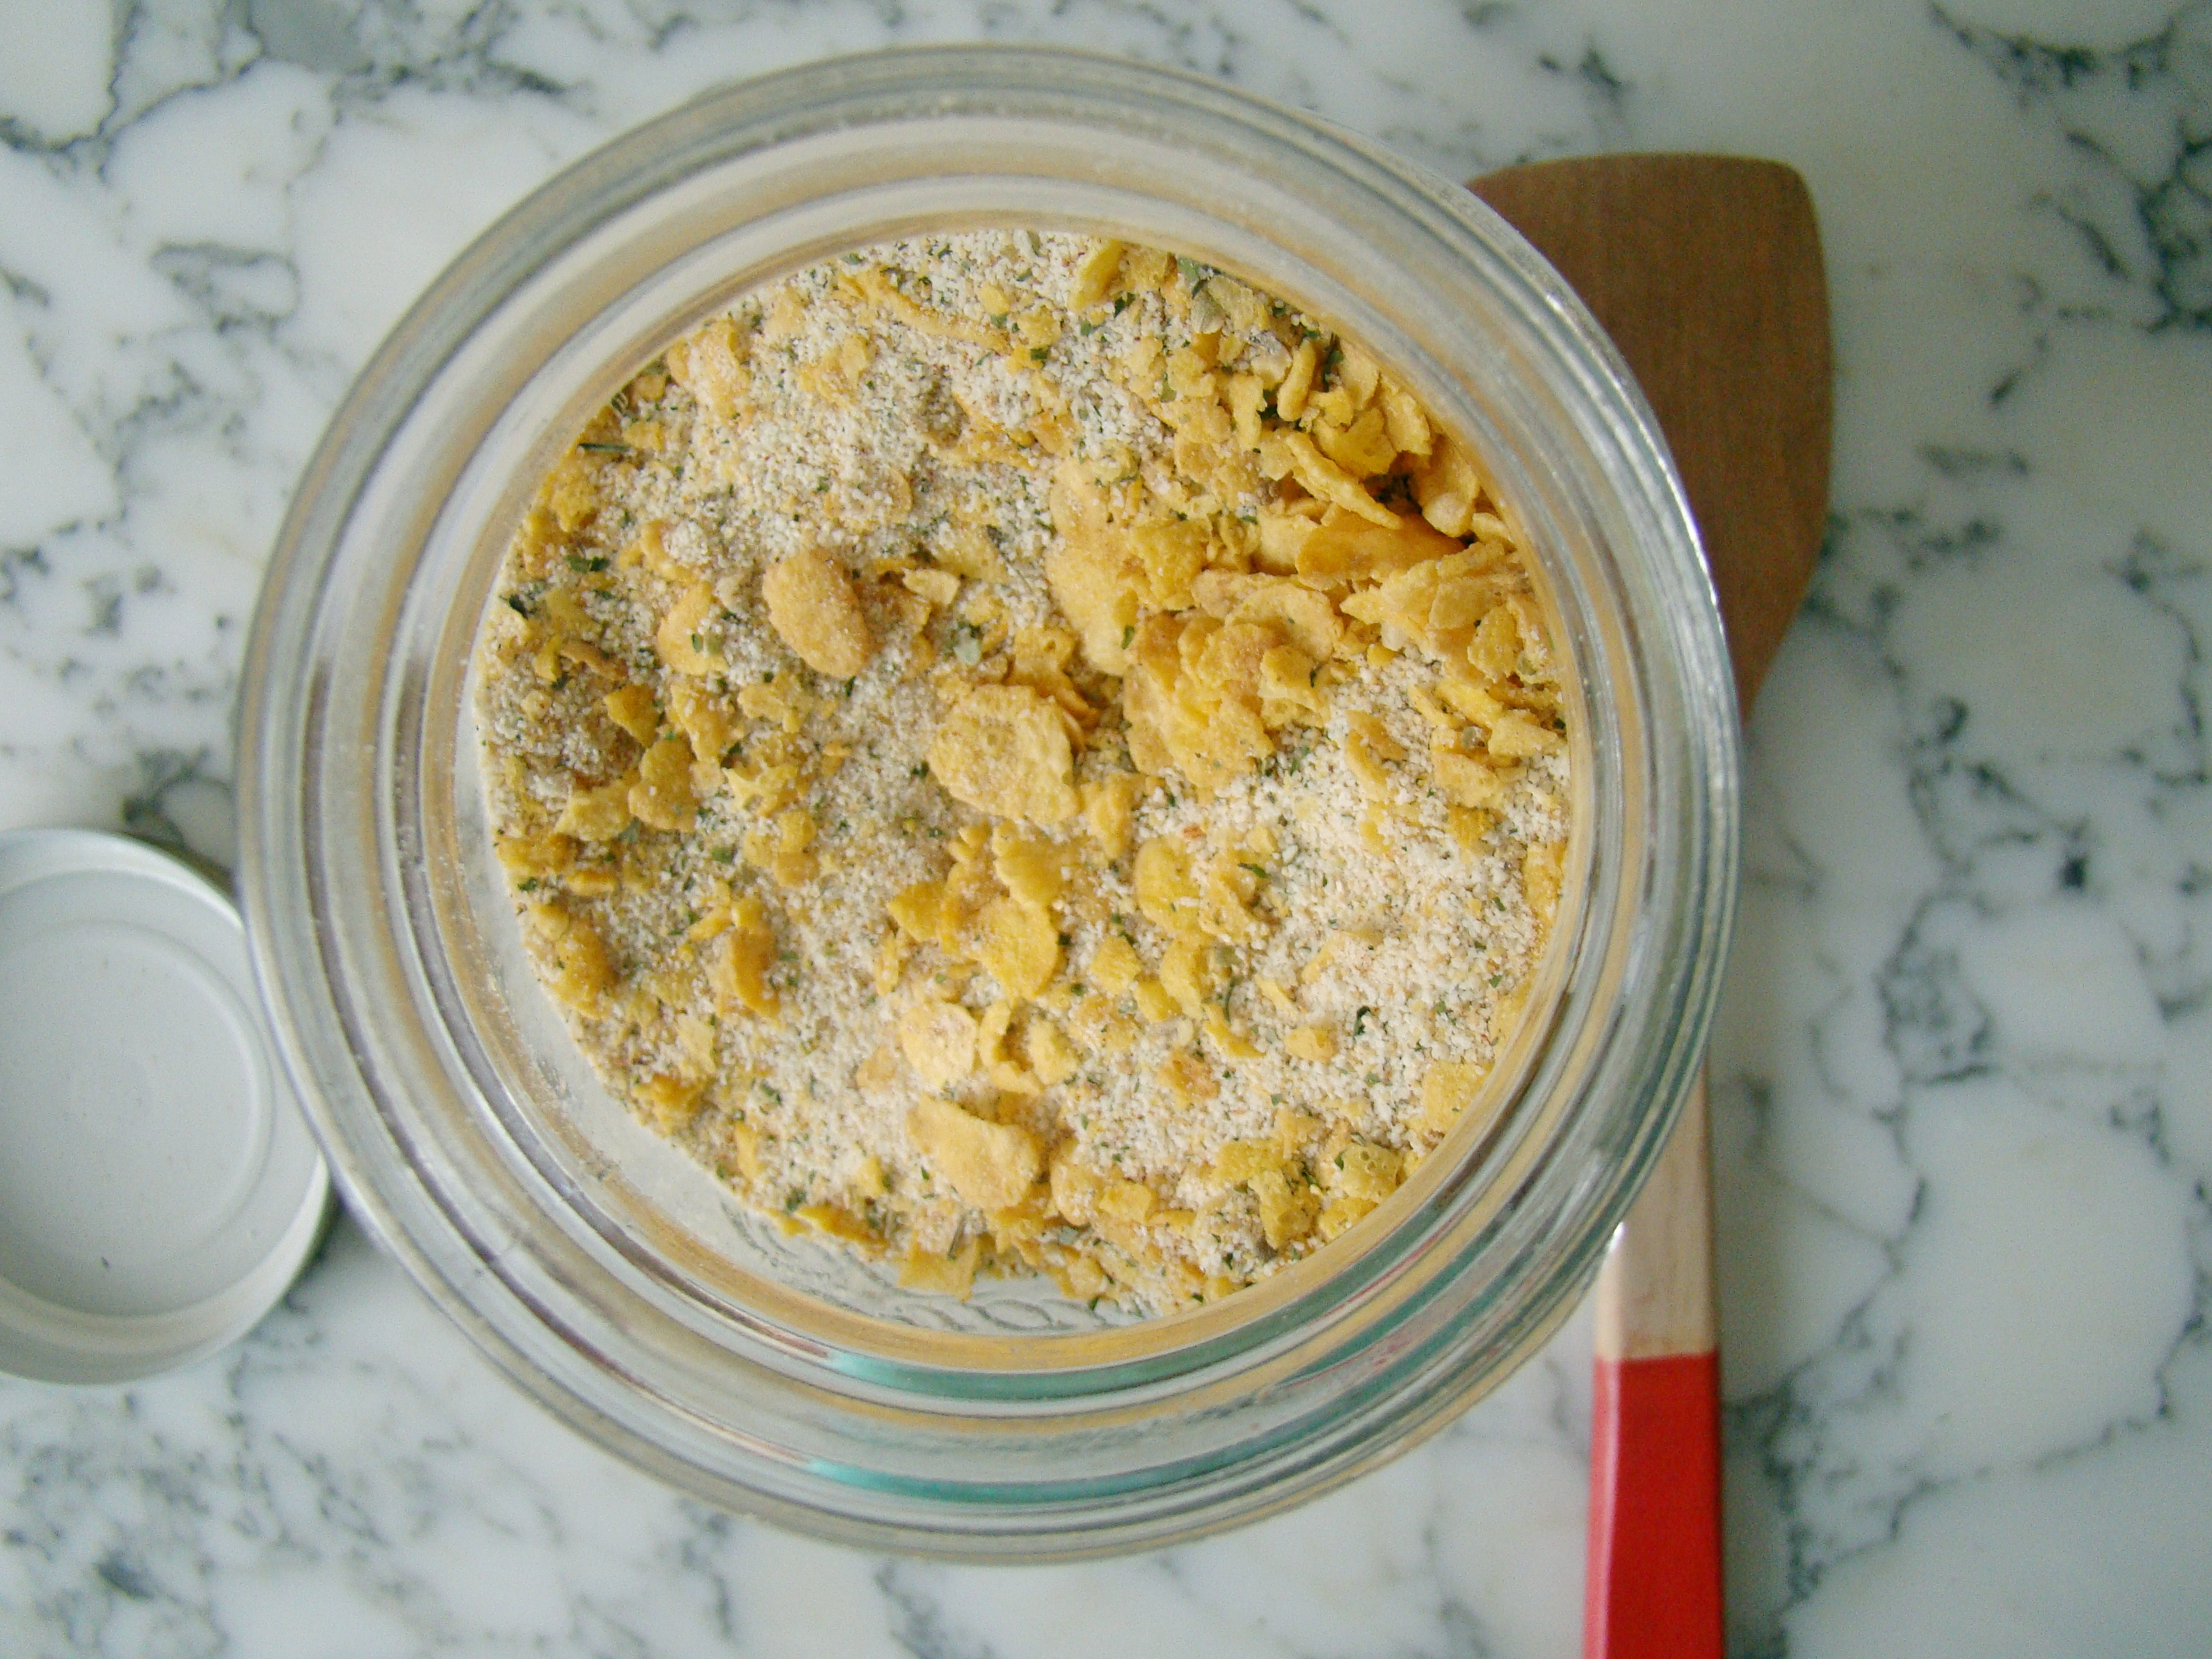 Corn Flakes Mixture for Fried or Baked Chicken